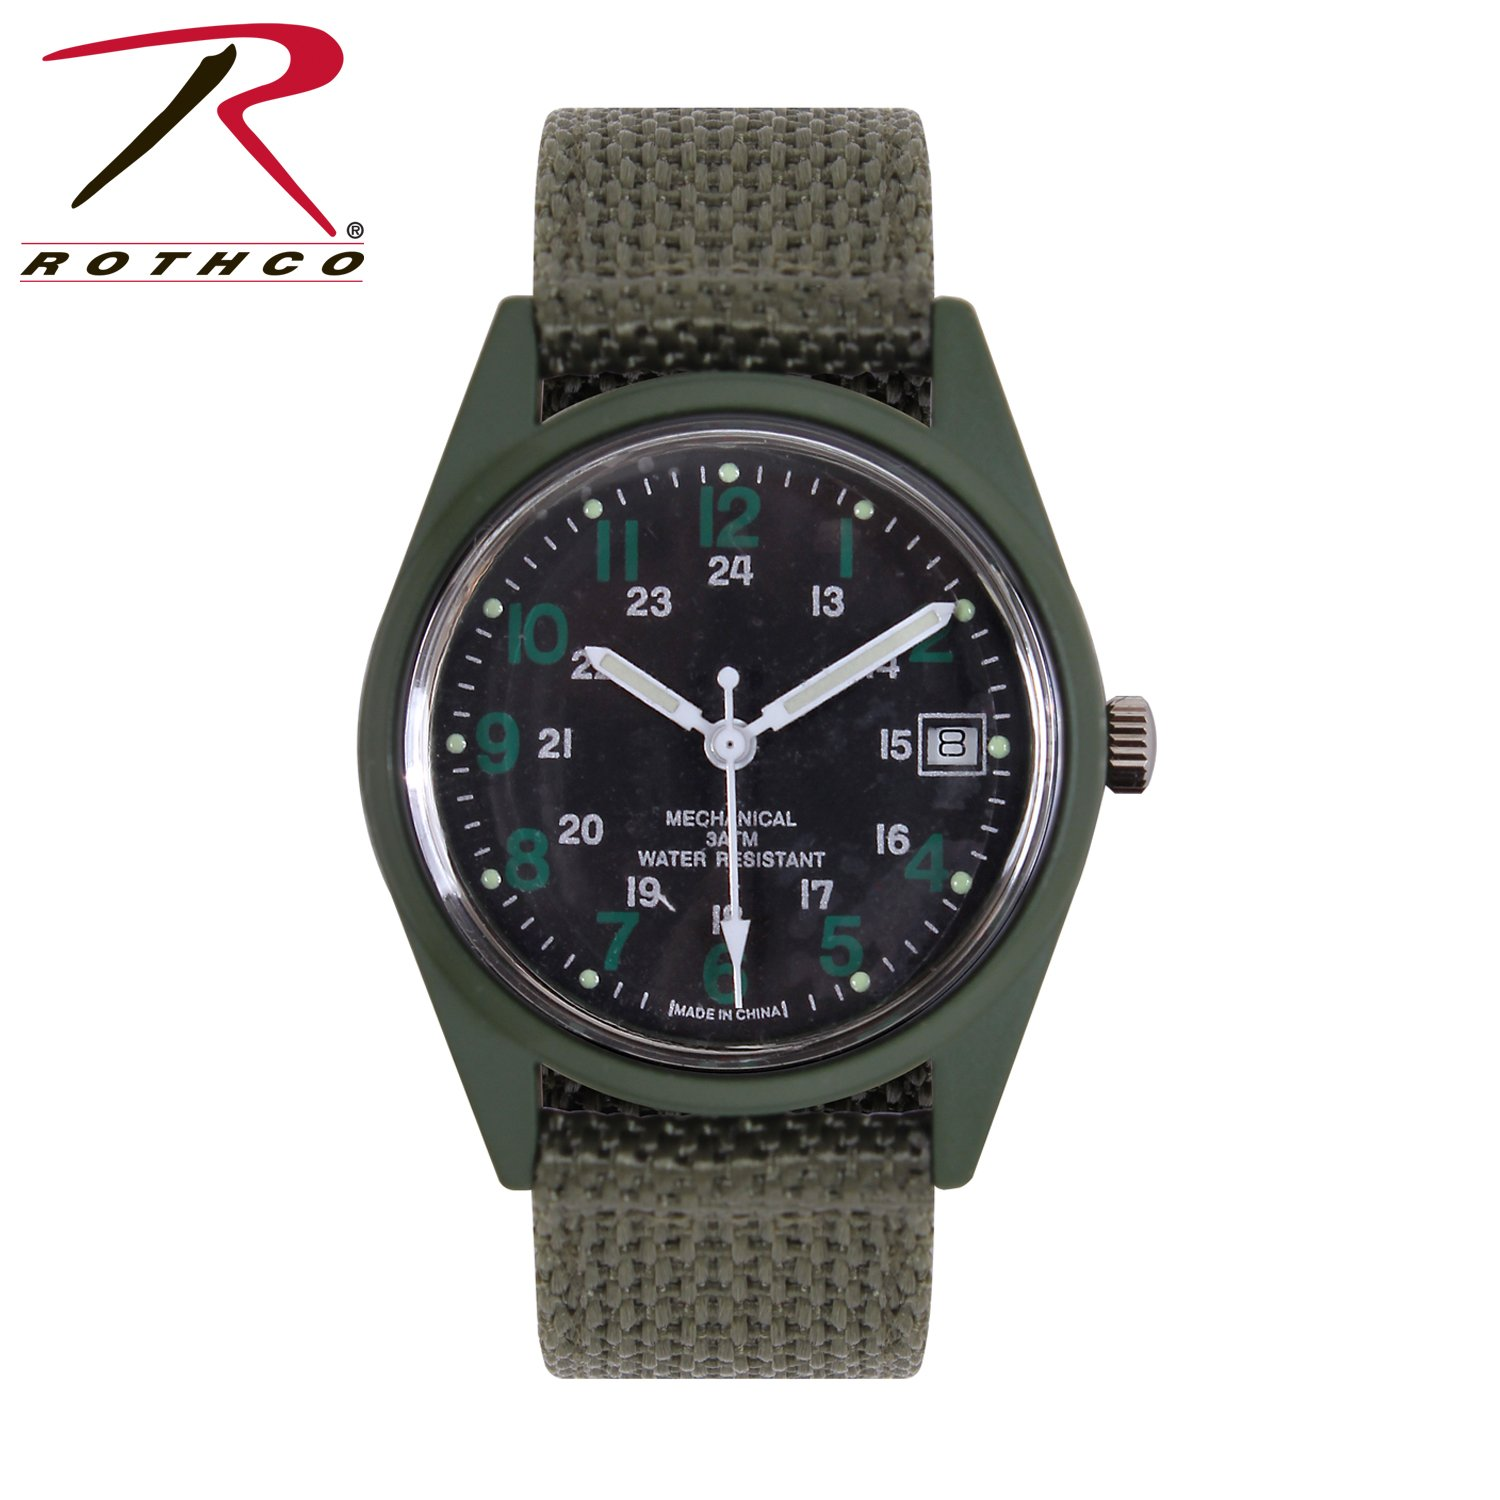 Rothco GI Type Vietnam Era Wind Up Watch, Olive Drab by Rothco